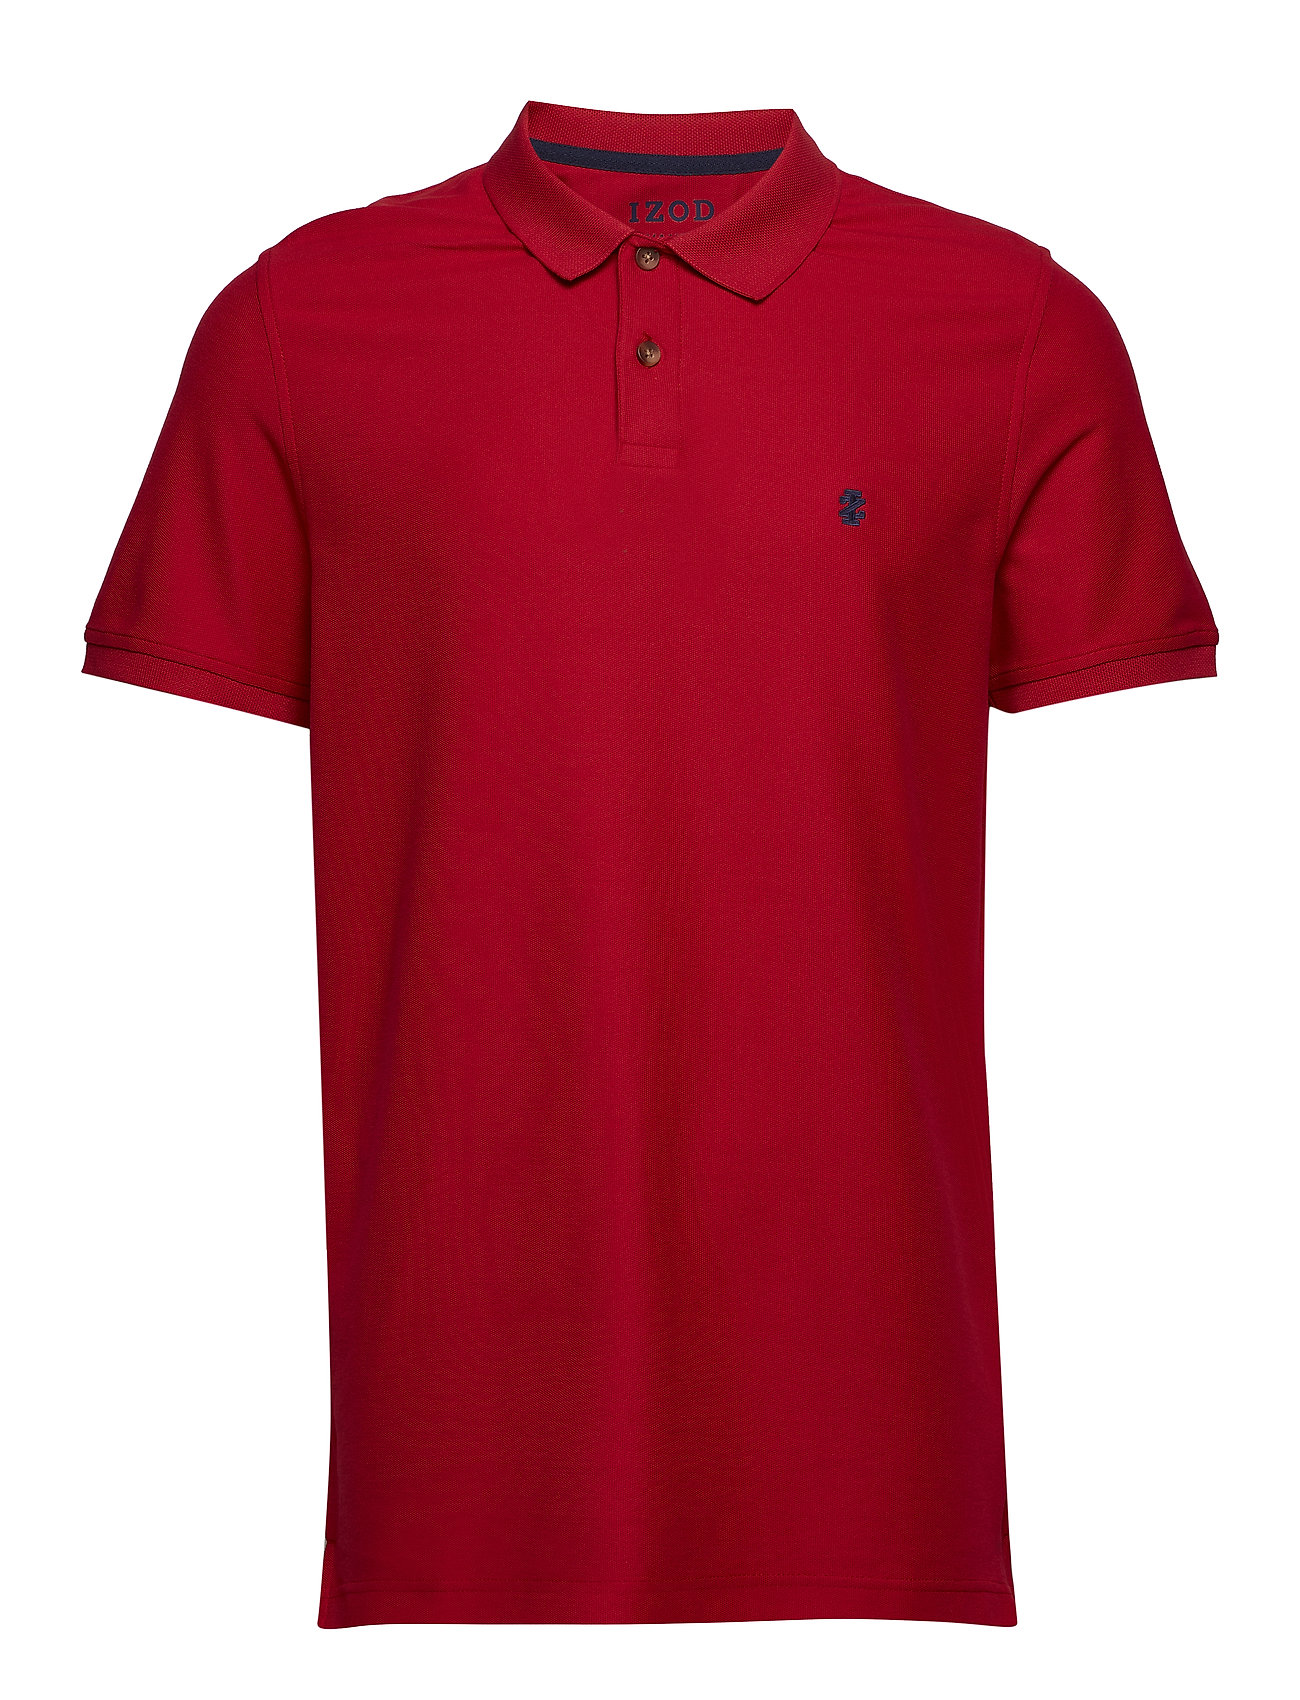 IZOD PERFORMANCE PIQUE POLO - REAL RED